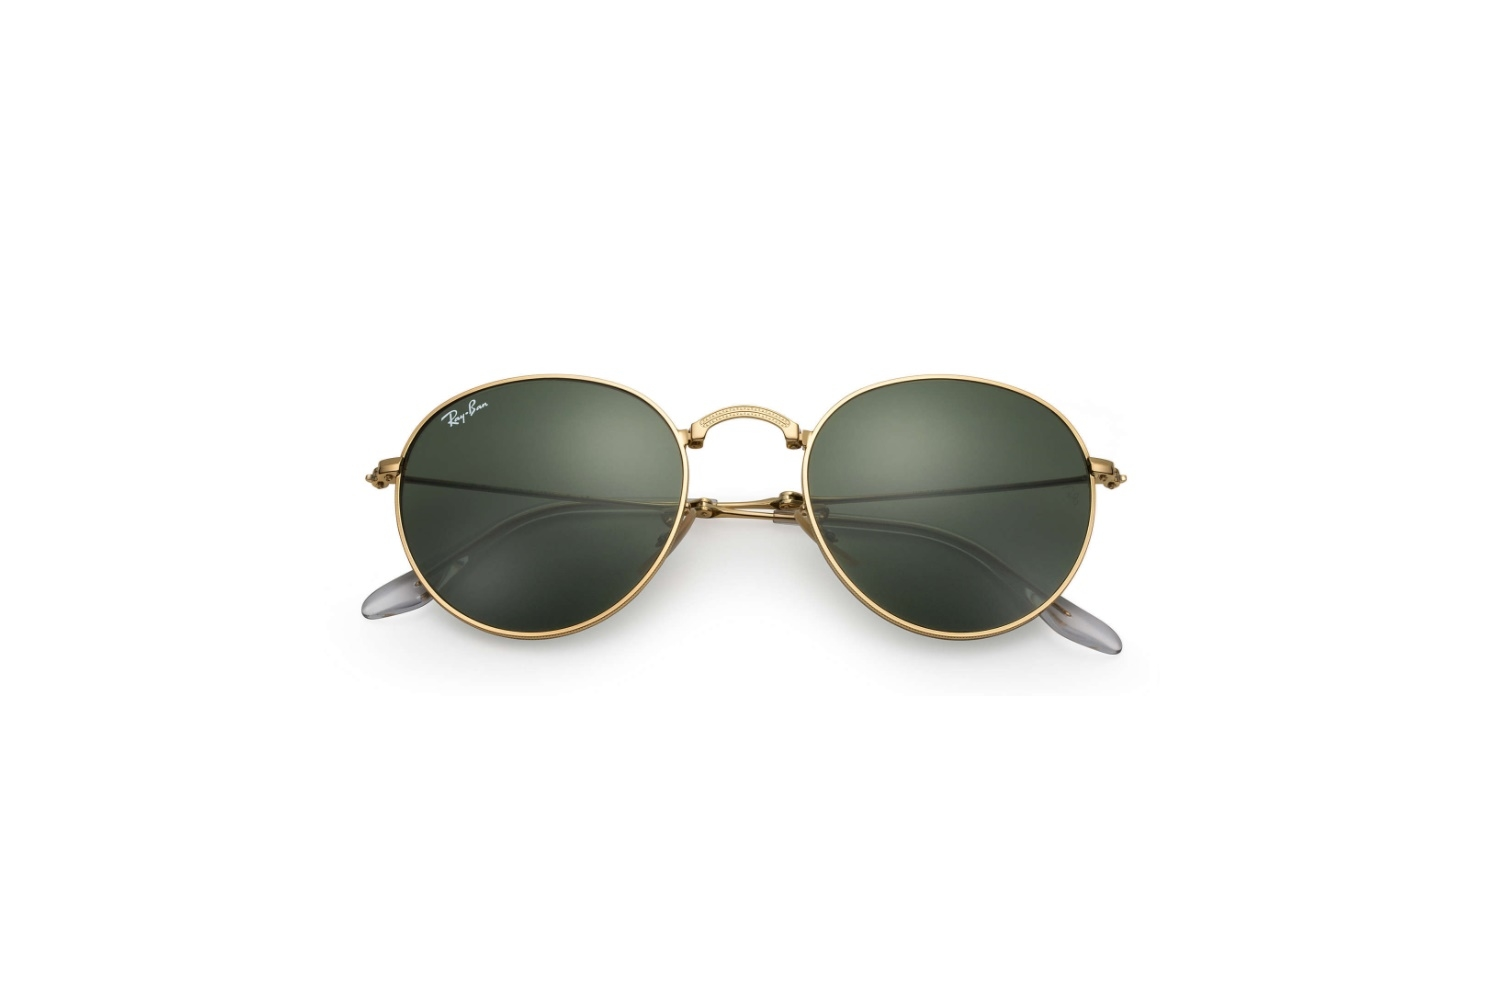 1035562e3b6 ... Ray - Ban Round Metal Folding - RB3532 001 50-20. Category   Sunglasses